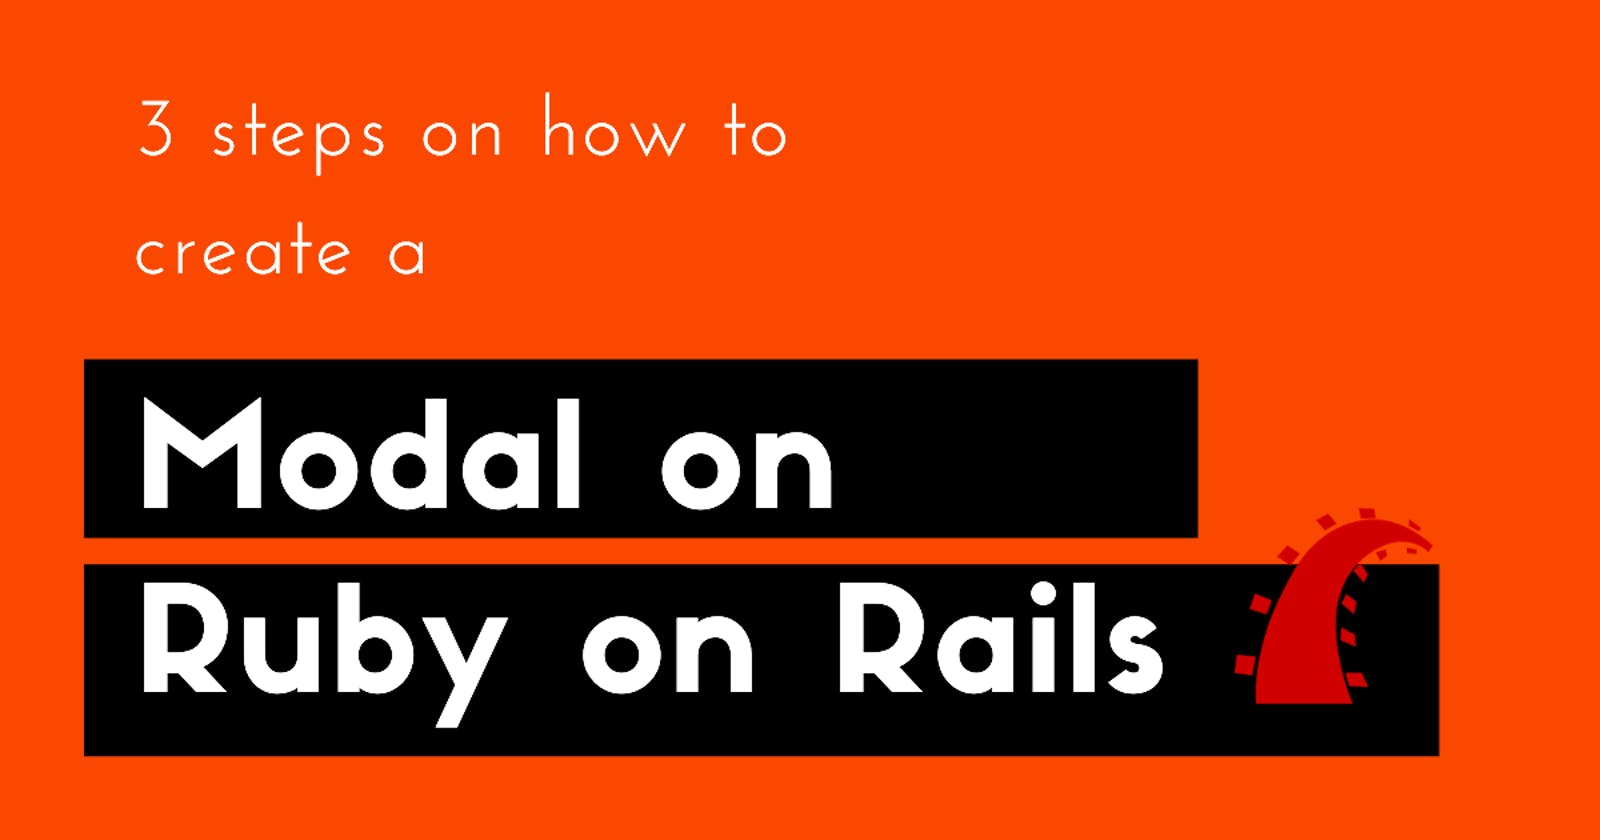 3 steps on how to build a modal with Ruby on Rails